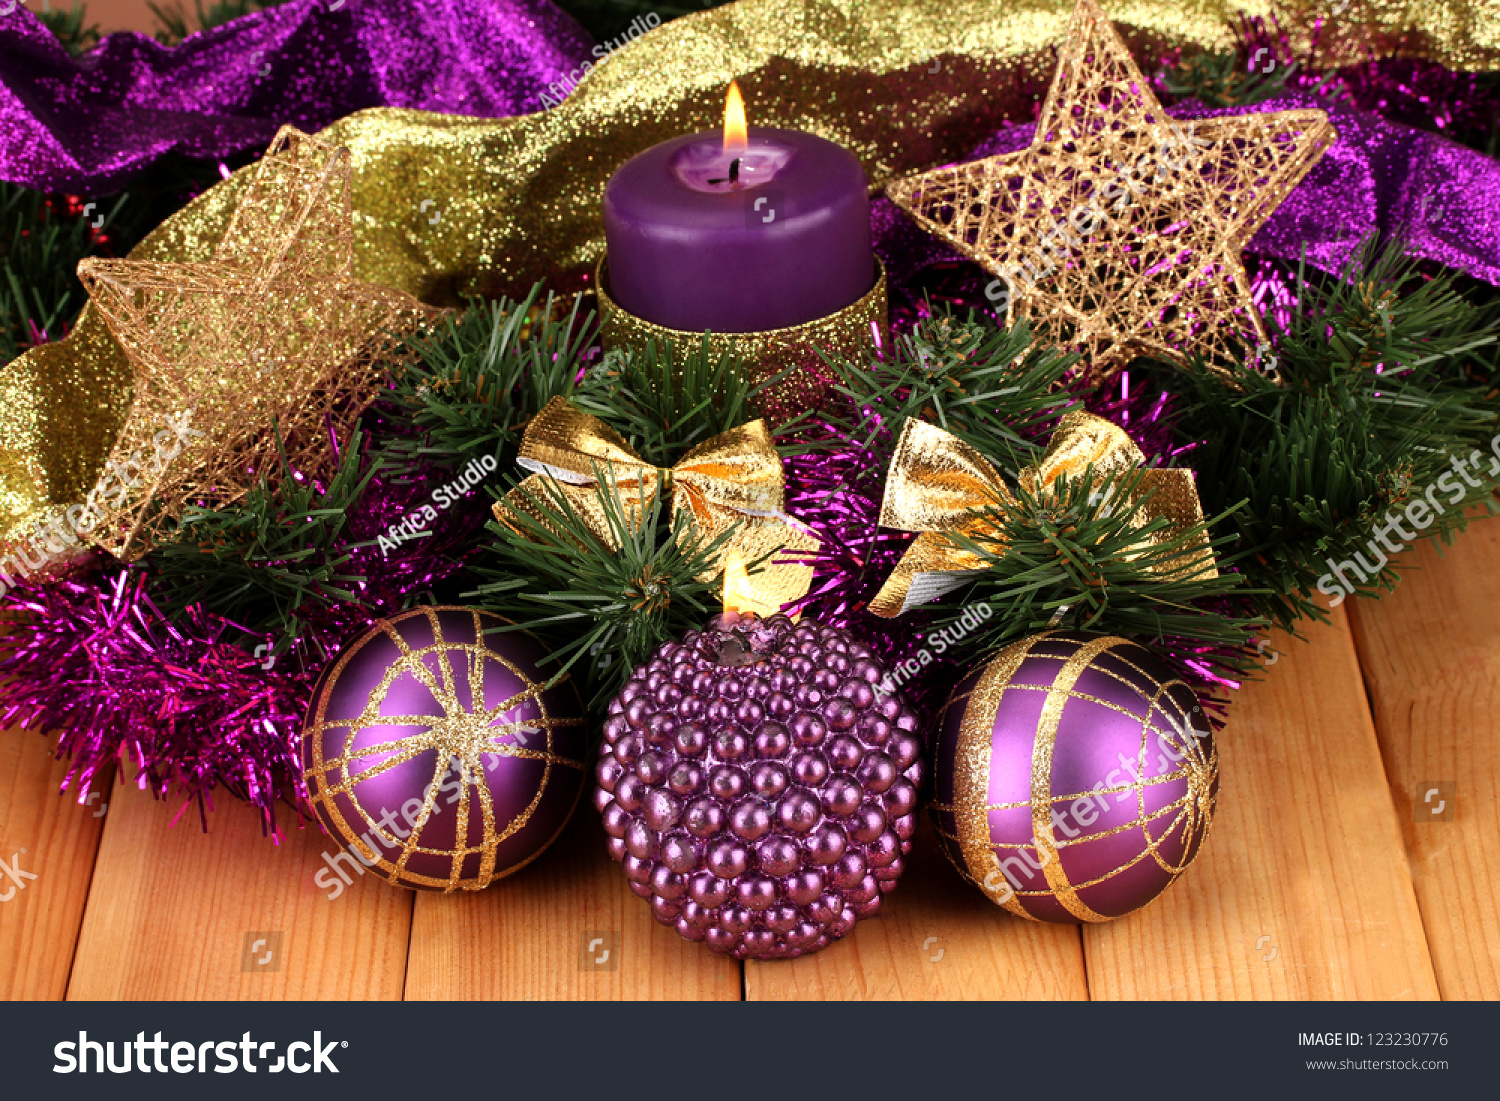 christmas composition with candles and decorations in purple and gold colors on wooden background ez canvas - Purple And Gold Christmas Tree Decorations